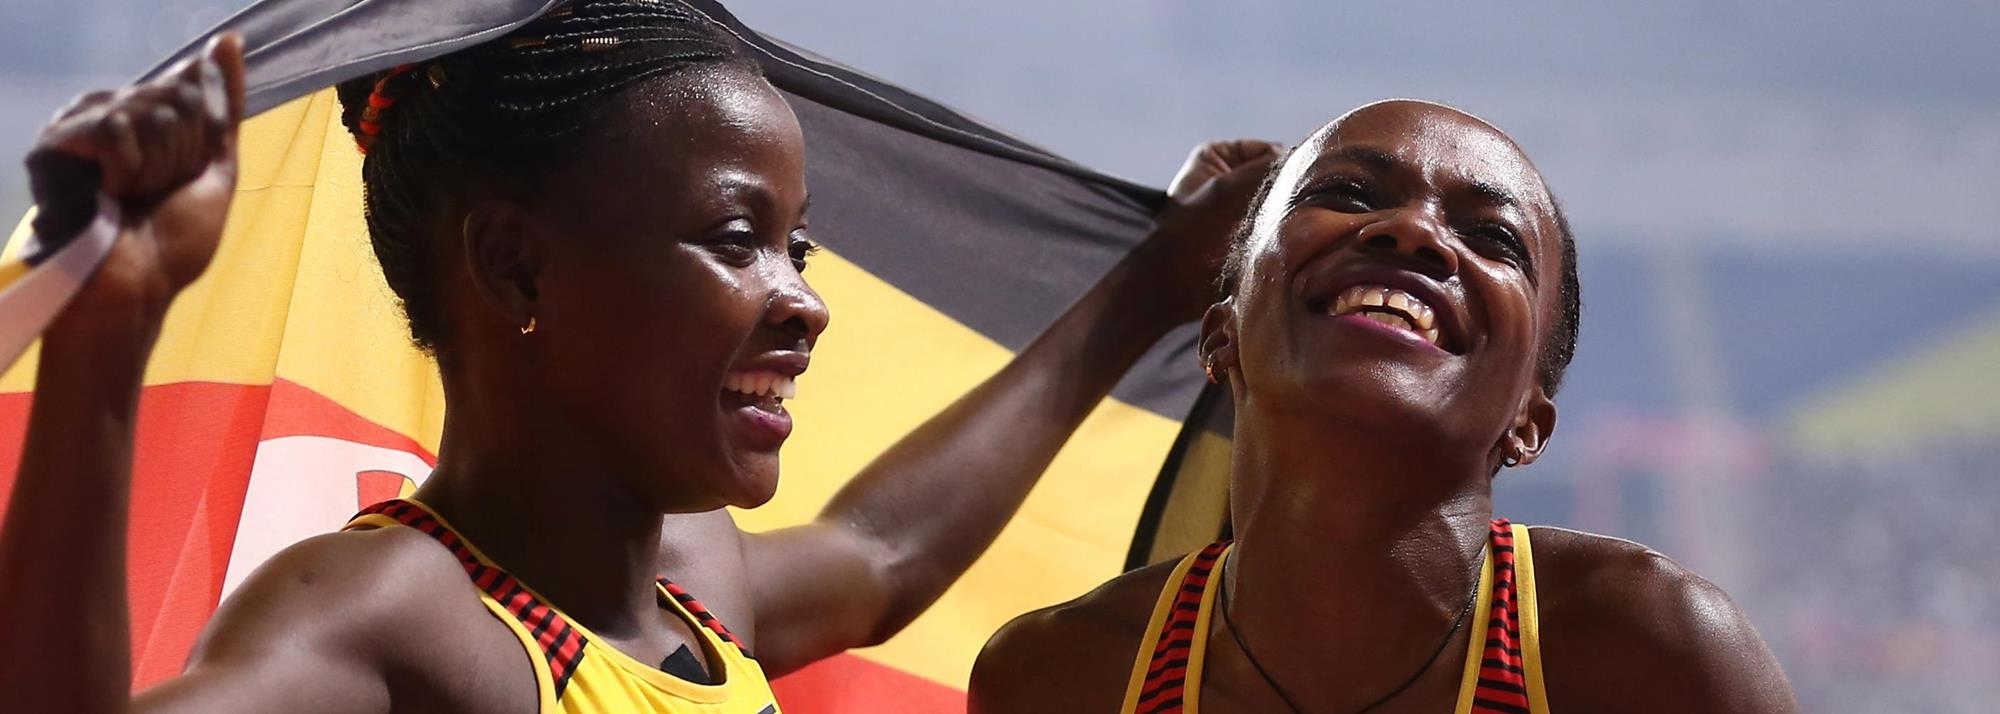 Sharing their successes, Nakaayi and Nanyondo help put Uganda on the athletics map